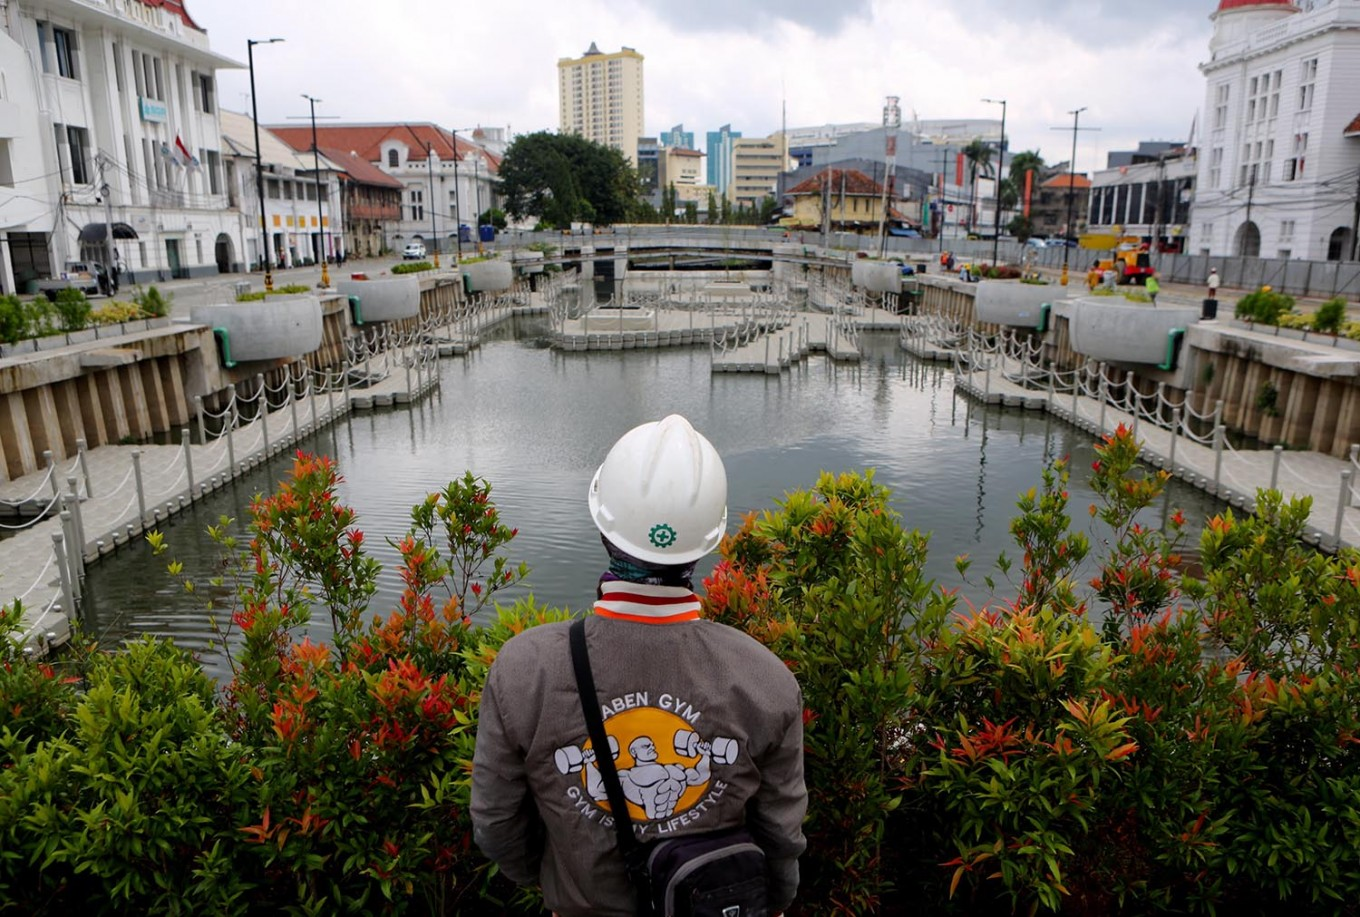 491 years old Jakarta: An age for environmental health